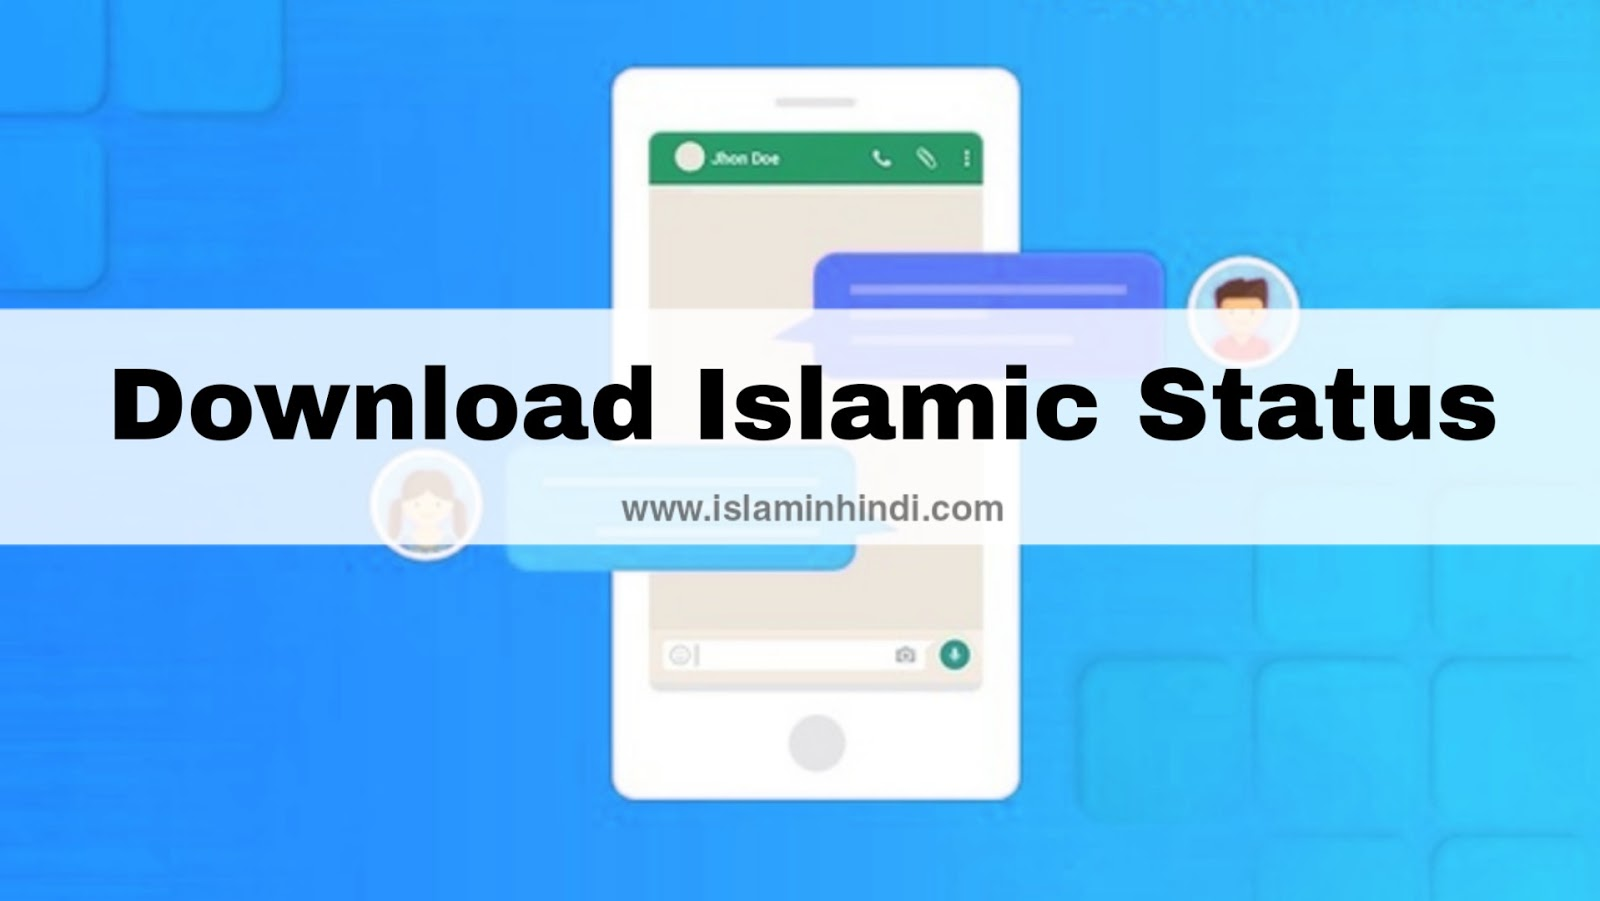 Download Islamic Status in Hindi